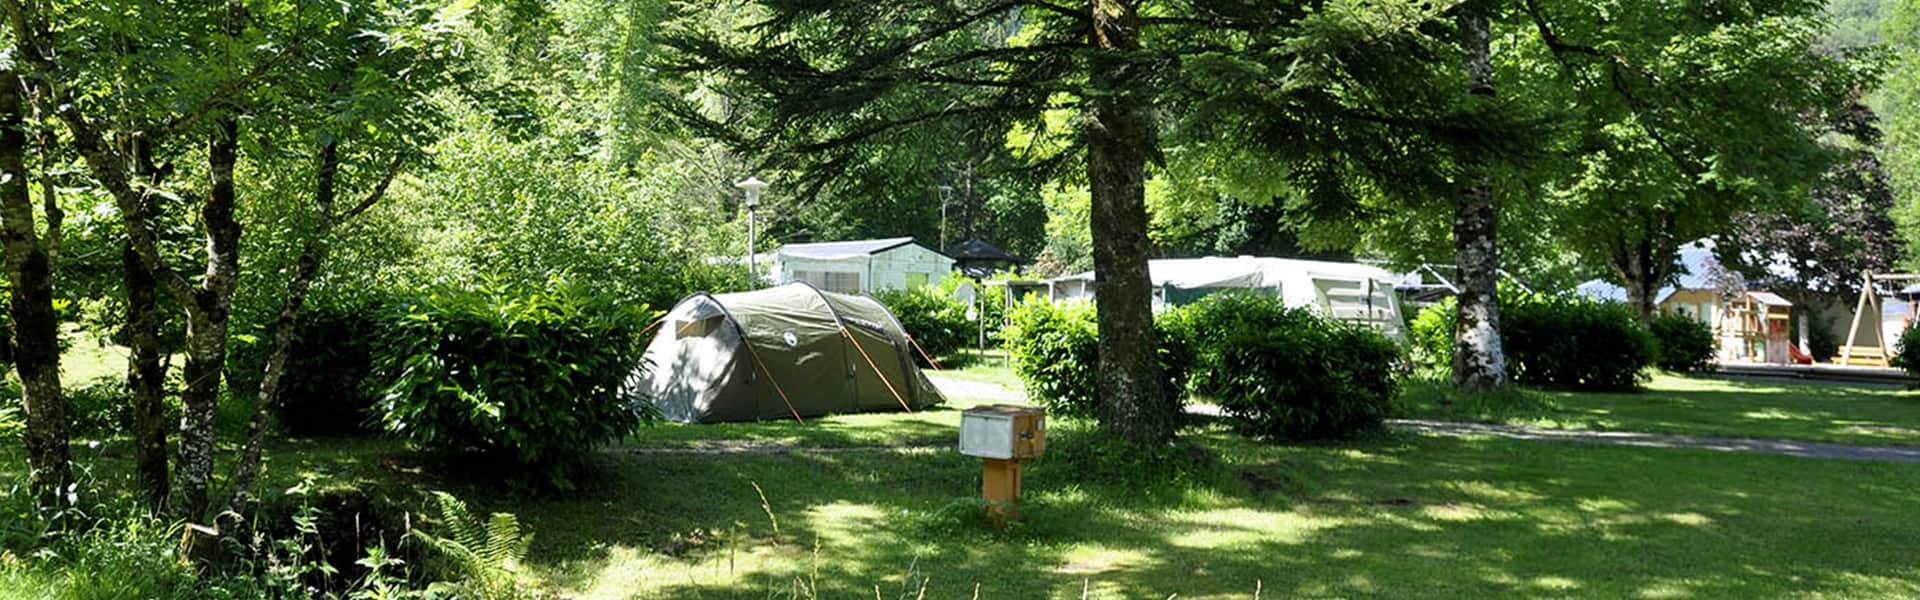 camping-couledous-bandeau-accueil-3-min